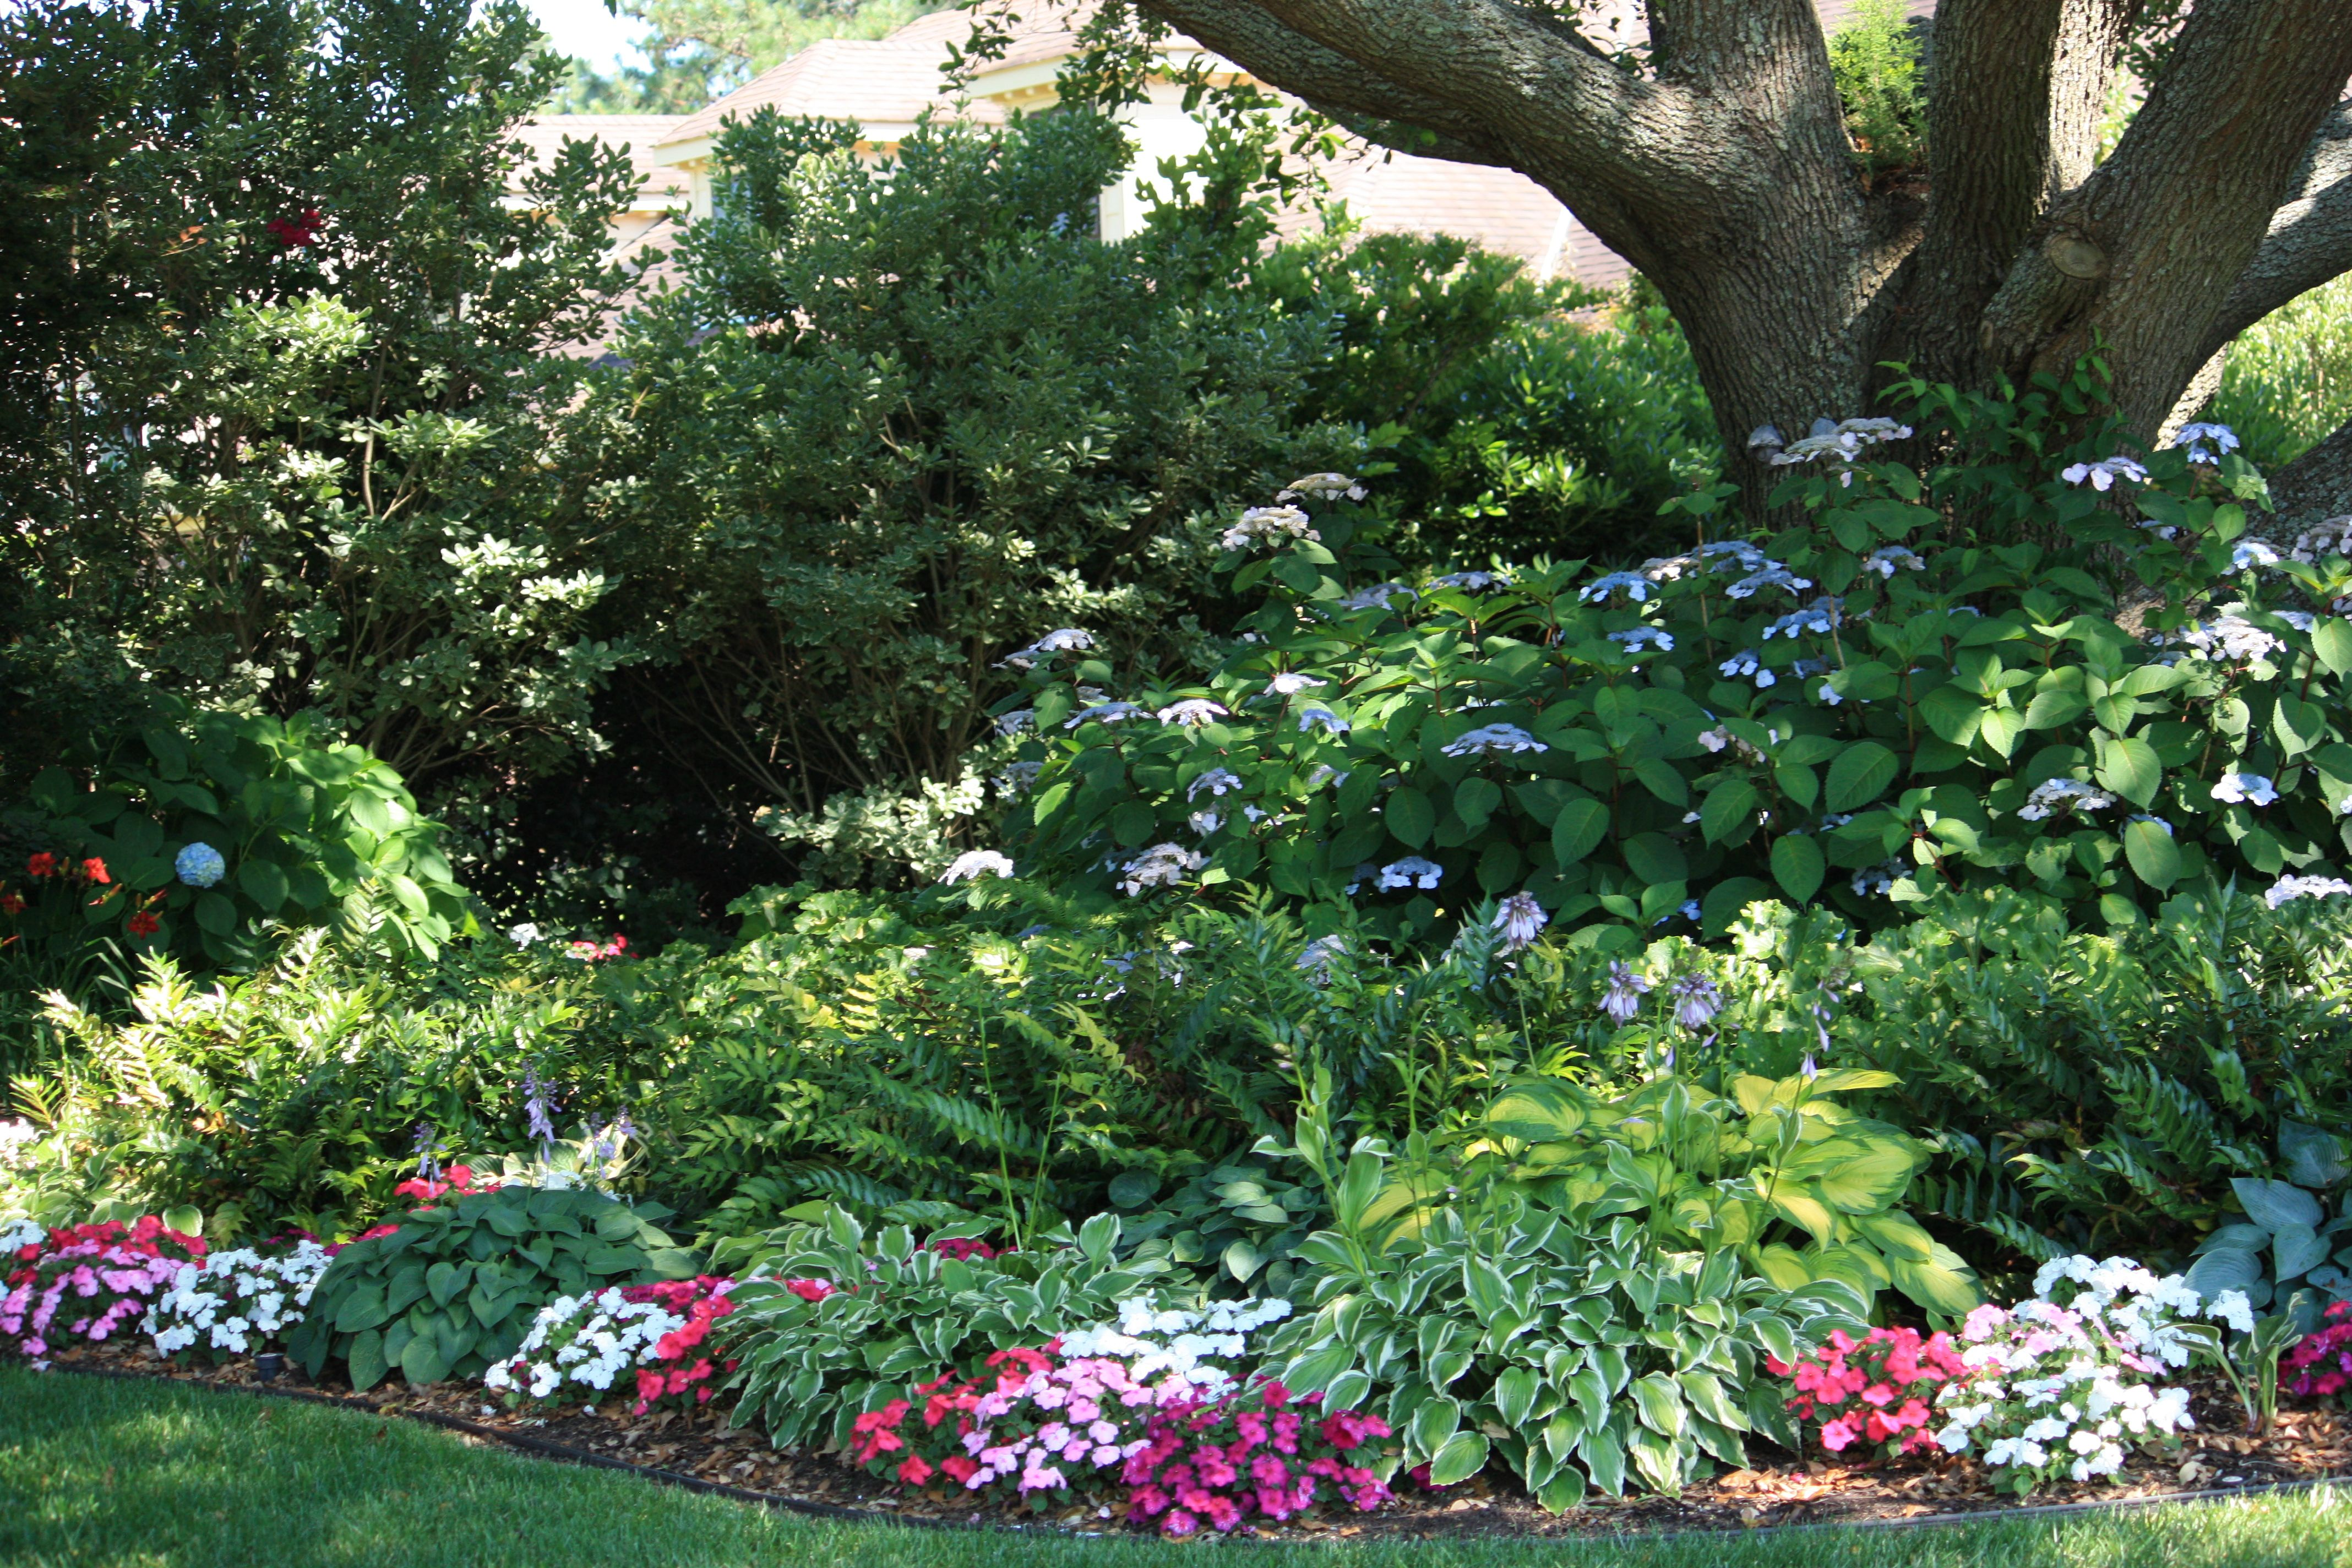 Lovely Shade Garden Hydrangeas Hostas Impatiens Bluebells Tall And Sparse Grasslike Plant And Some Oth Flower Garden Pictures Garden Pictures Shade Garden